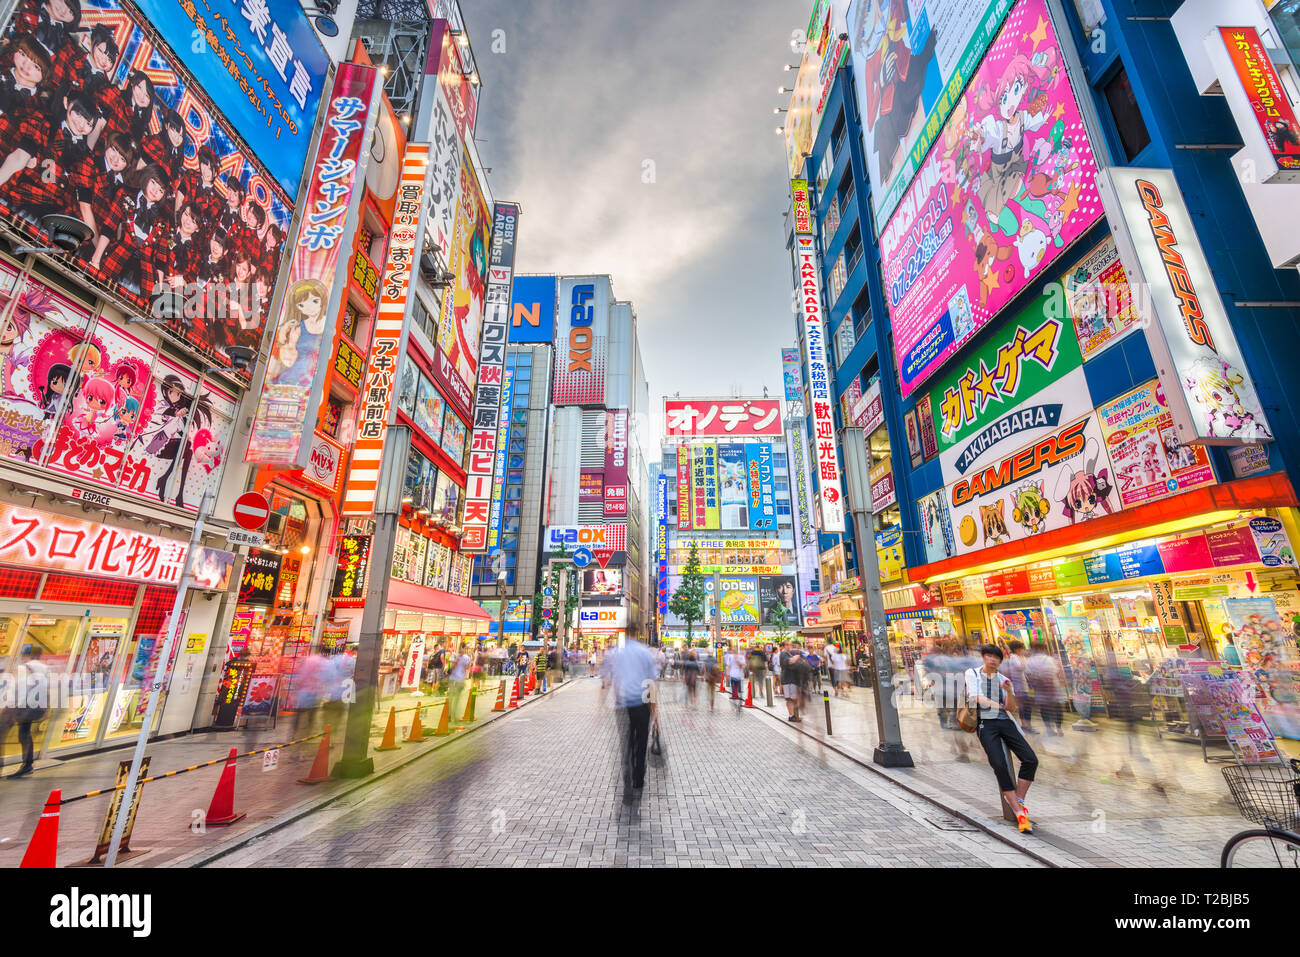 TOKYO, JAPAN - AUGUST 1, 2015: Crowds pass below colorful signs in Akihabara. The historic electronics district has evolved into a shopping area for v - Stock Image